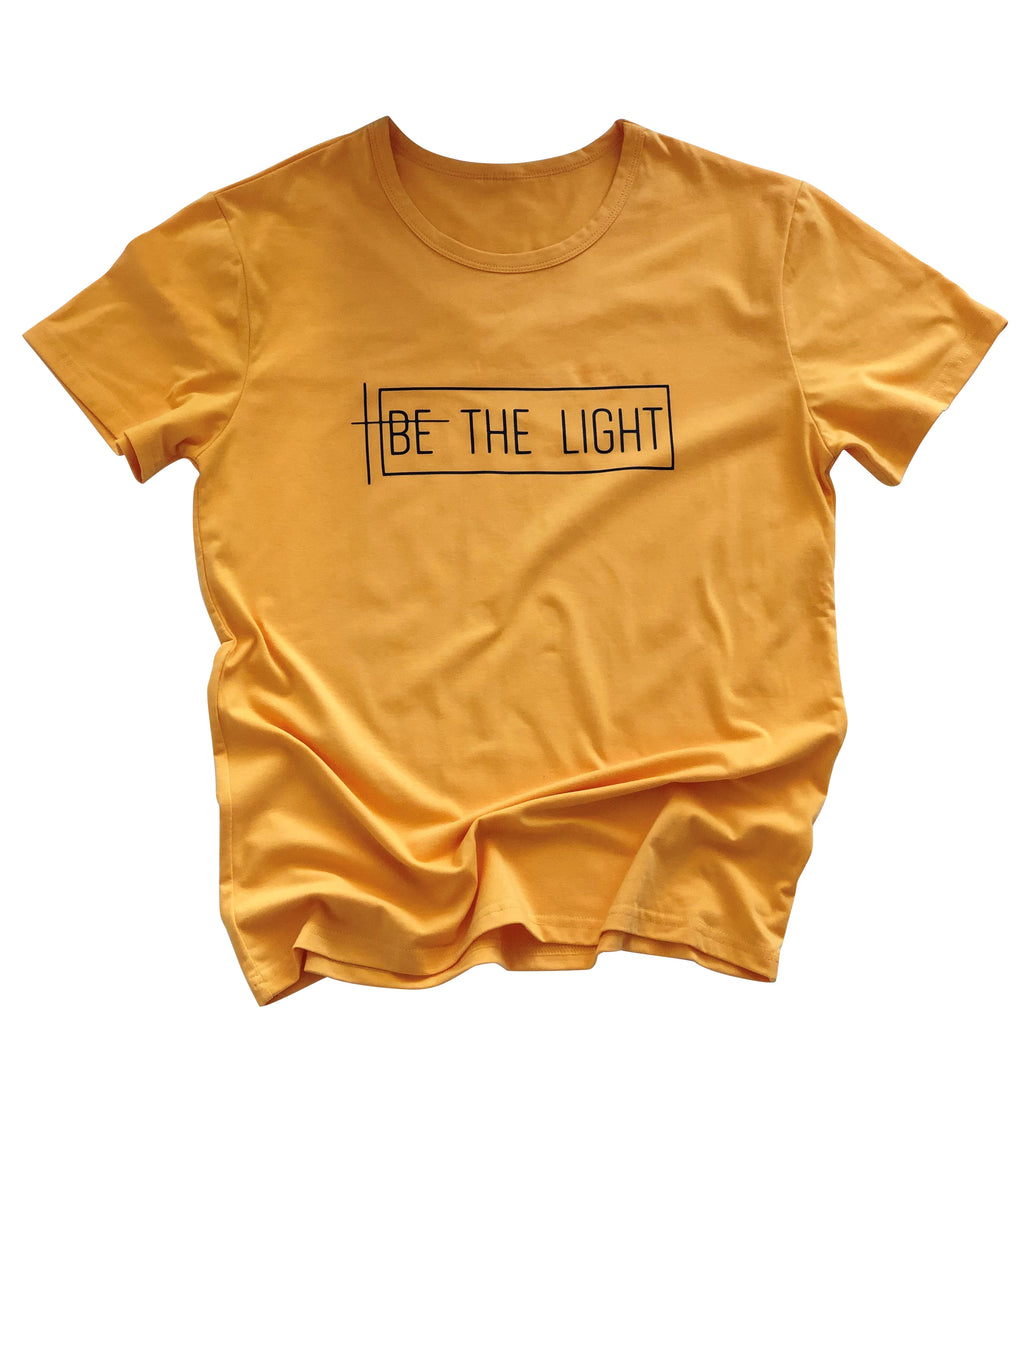 Be The Light Shirt - Trunk Series, LLC